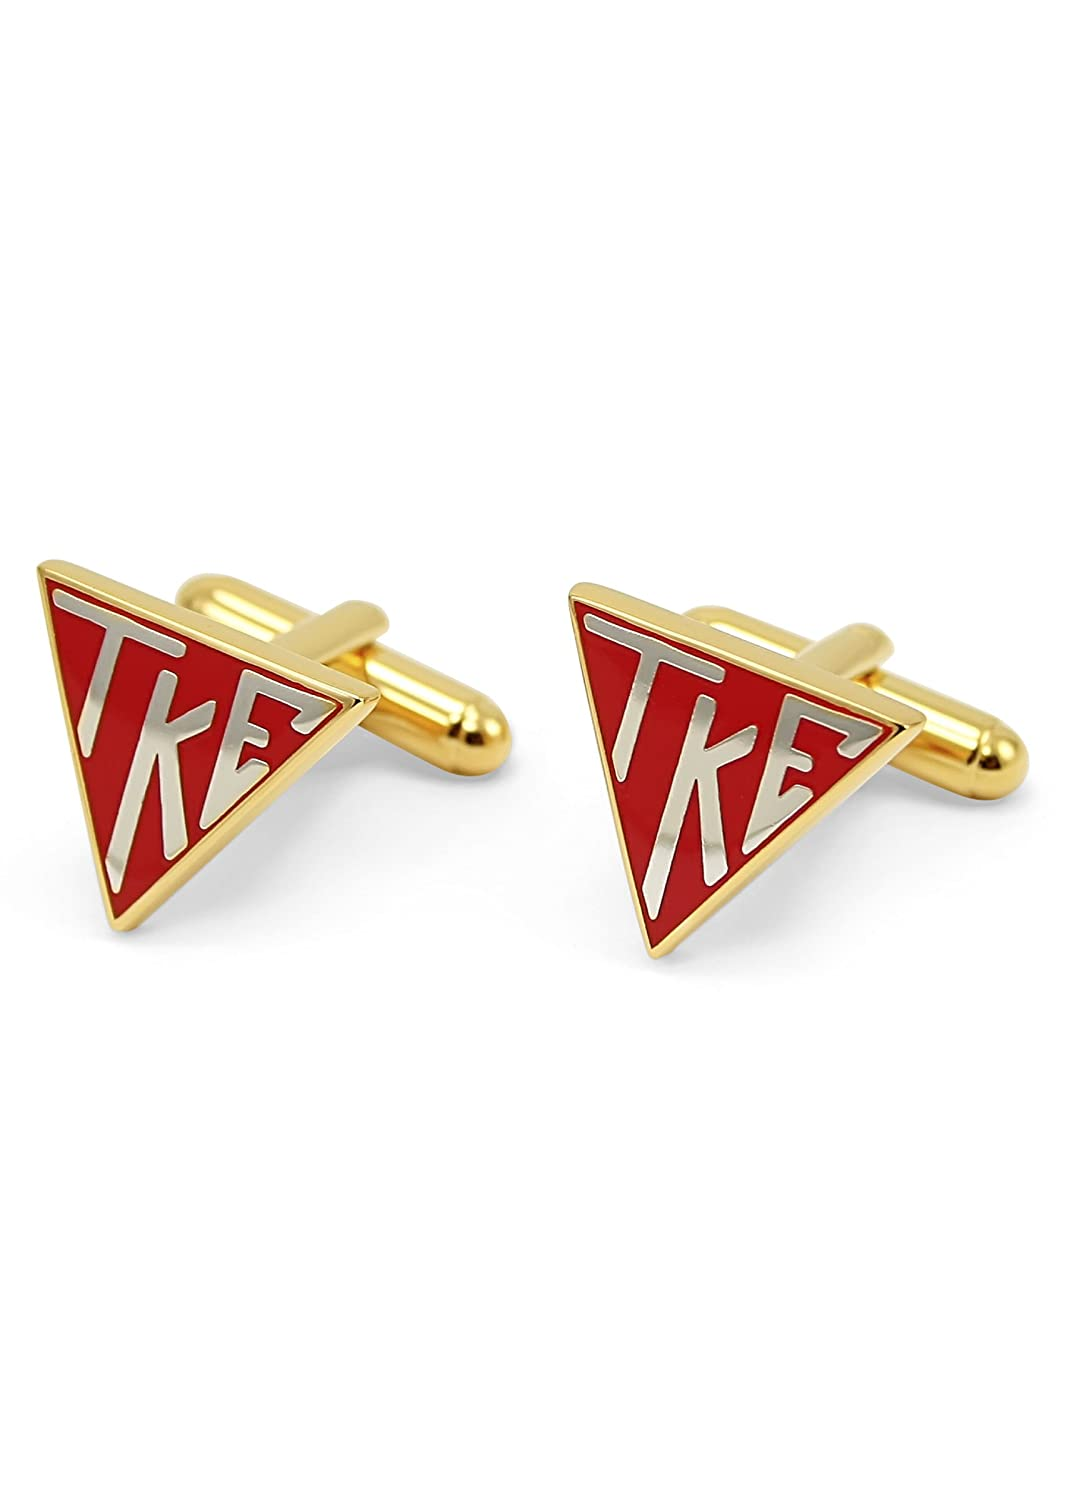 Amazon.com: Tau Kappa Epsilon Triángulo Gemelos (Gold-Plated ...